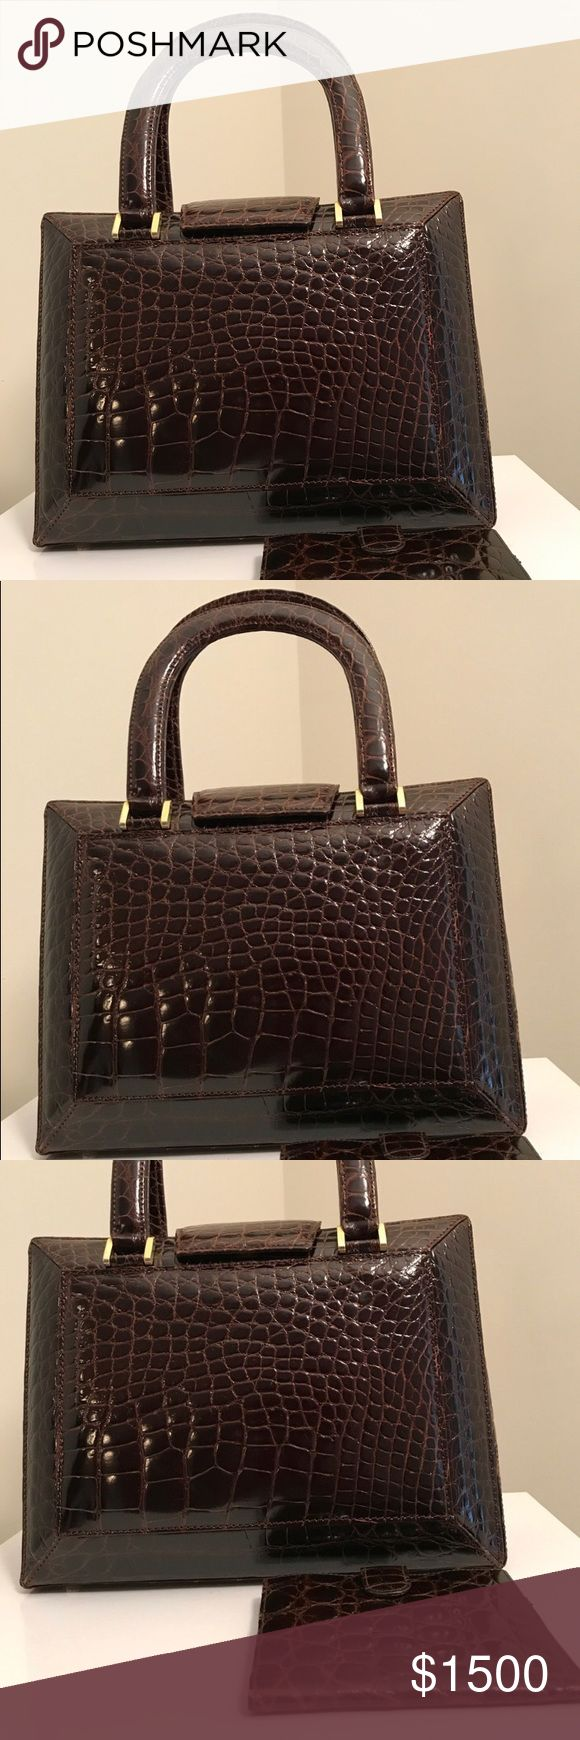 "✨HOST PICK.✨Crocodile • Handcrafted in Italy 🇮🇹 ""Luxury Item"" #AUTHENTIC #CROCODILE This is a ONE OF A KIND. This beauty has a brown leather lined interior. Shown. Crocodile wallet is a #GWP. #Handcrafted by expert craftsman to designers AND purchased at an exclusive boutique in #Italy. Top Handle 6"" drop. DIMENSIONS 10 W X 8 H X 4 D. Magnetic snap-flap closure. Gold Tone hardware accents. Two inside zip pockets one in center. One inside phone slot. NWOT Comes with dustbag. Pictures are in…"